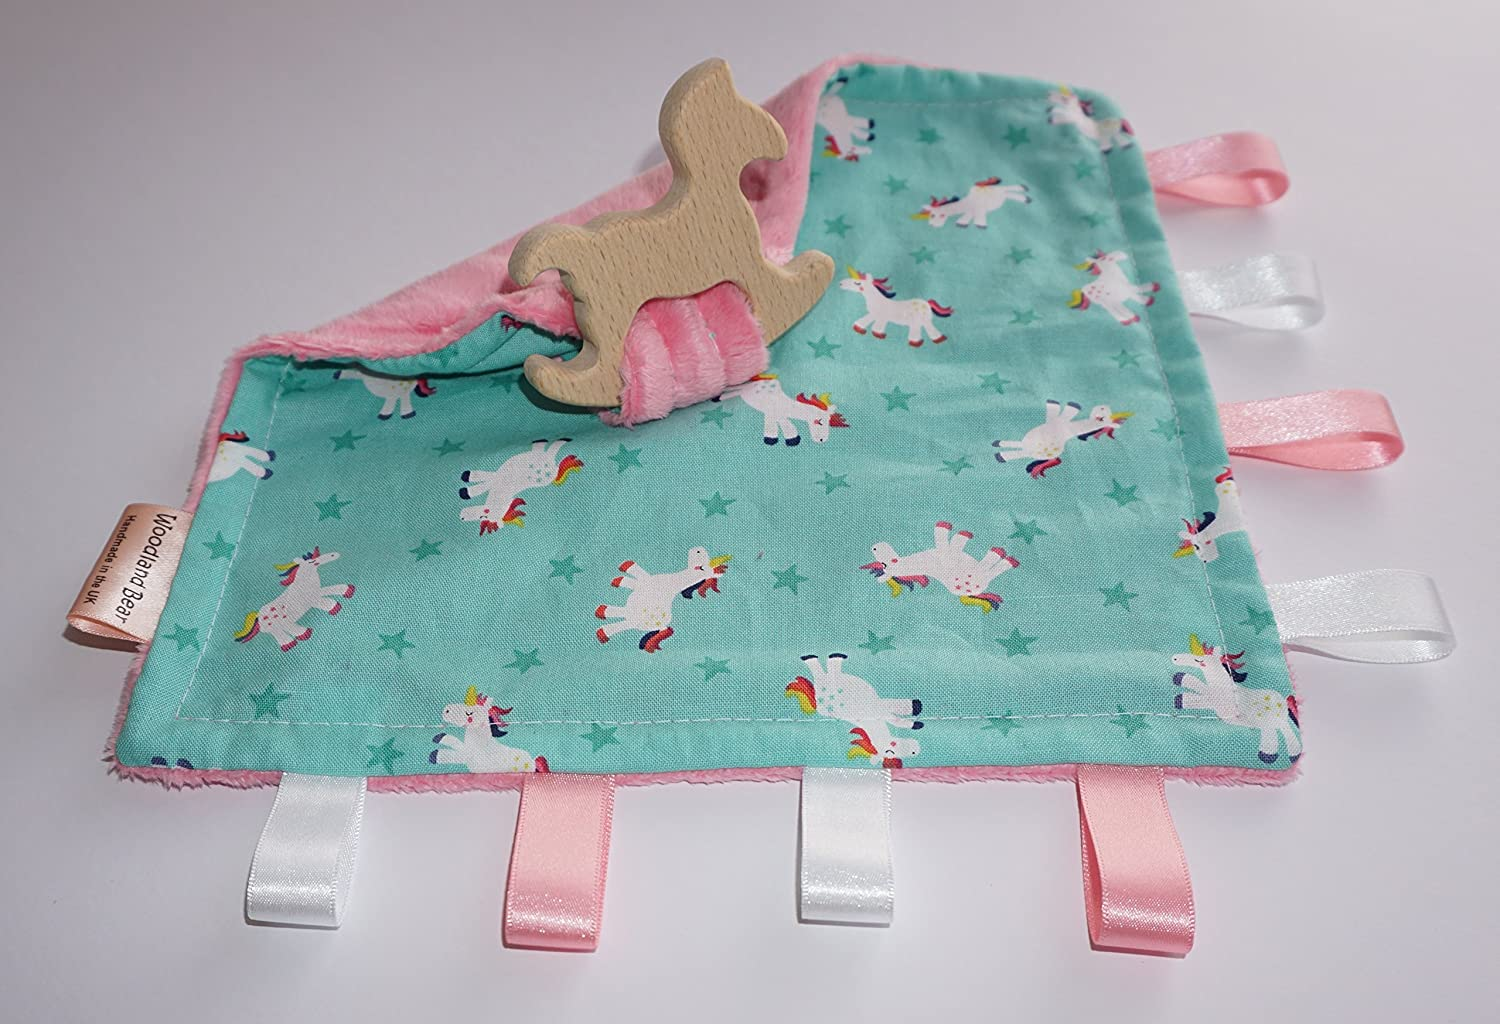 Teething baby blanket comforter - Unicorns - organic wooden rocking horse - CE certified from birth